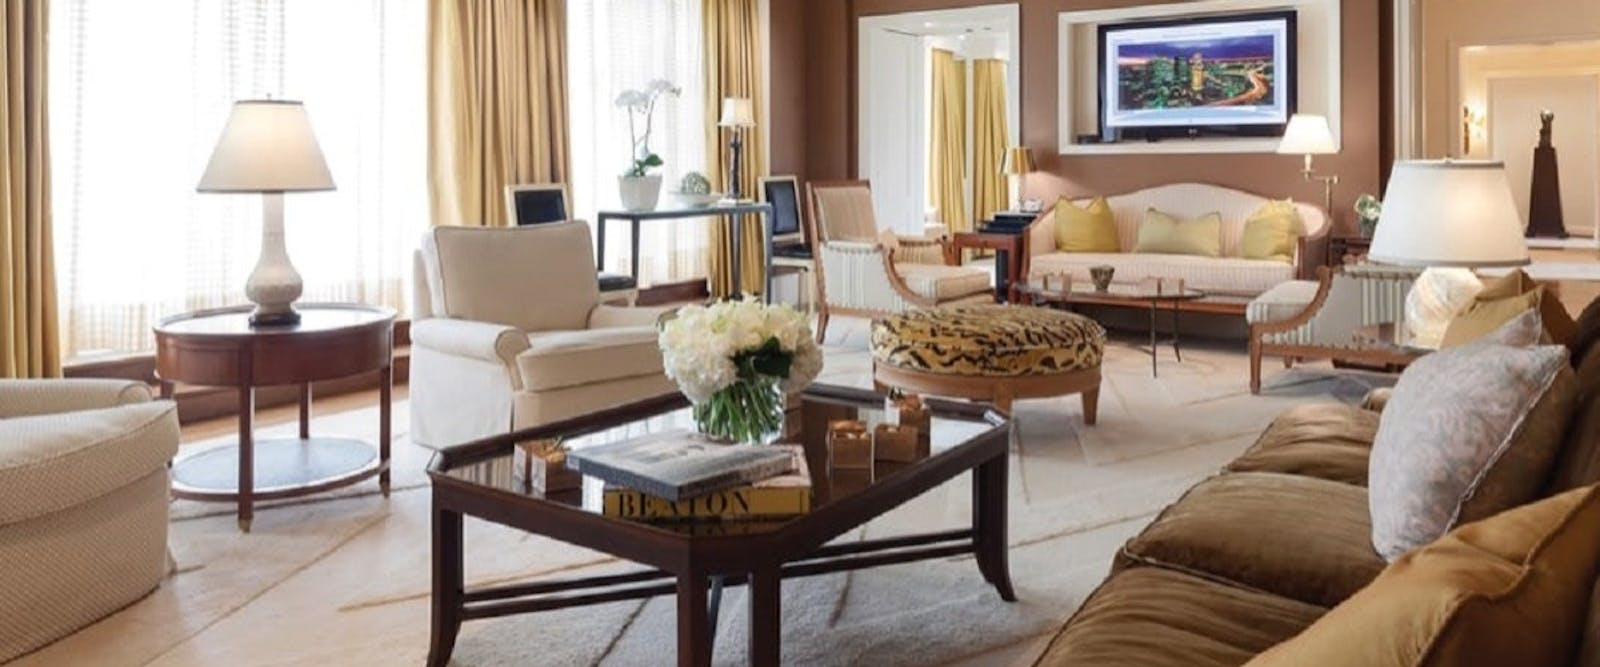 Presidential Suite at Four Seasons Hotel Boston, New England